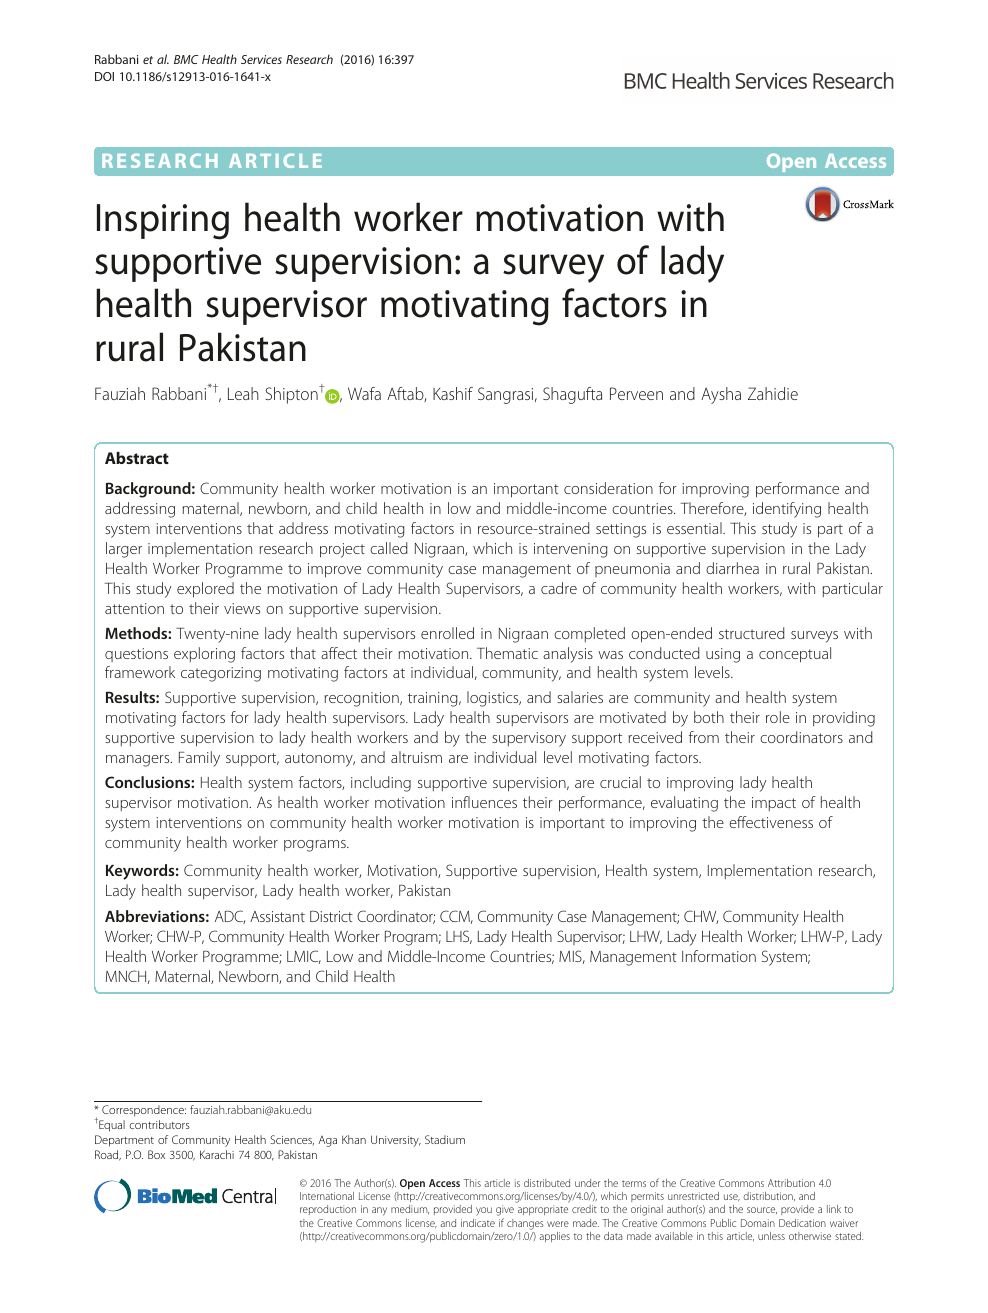 Inspiring health worker motivation with supportive supervision: a